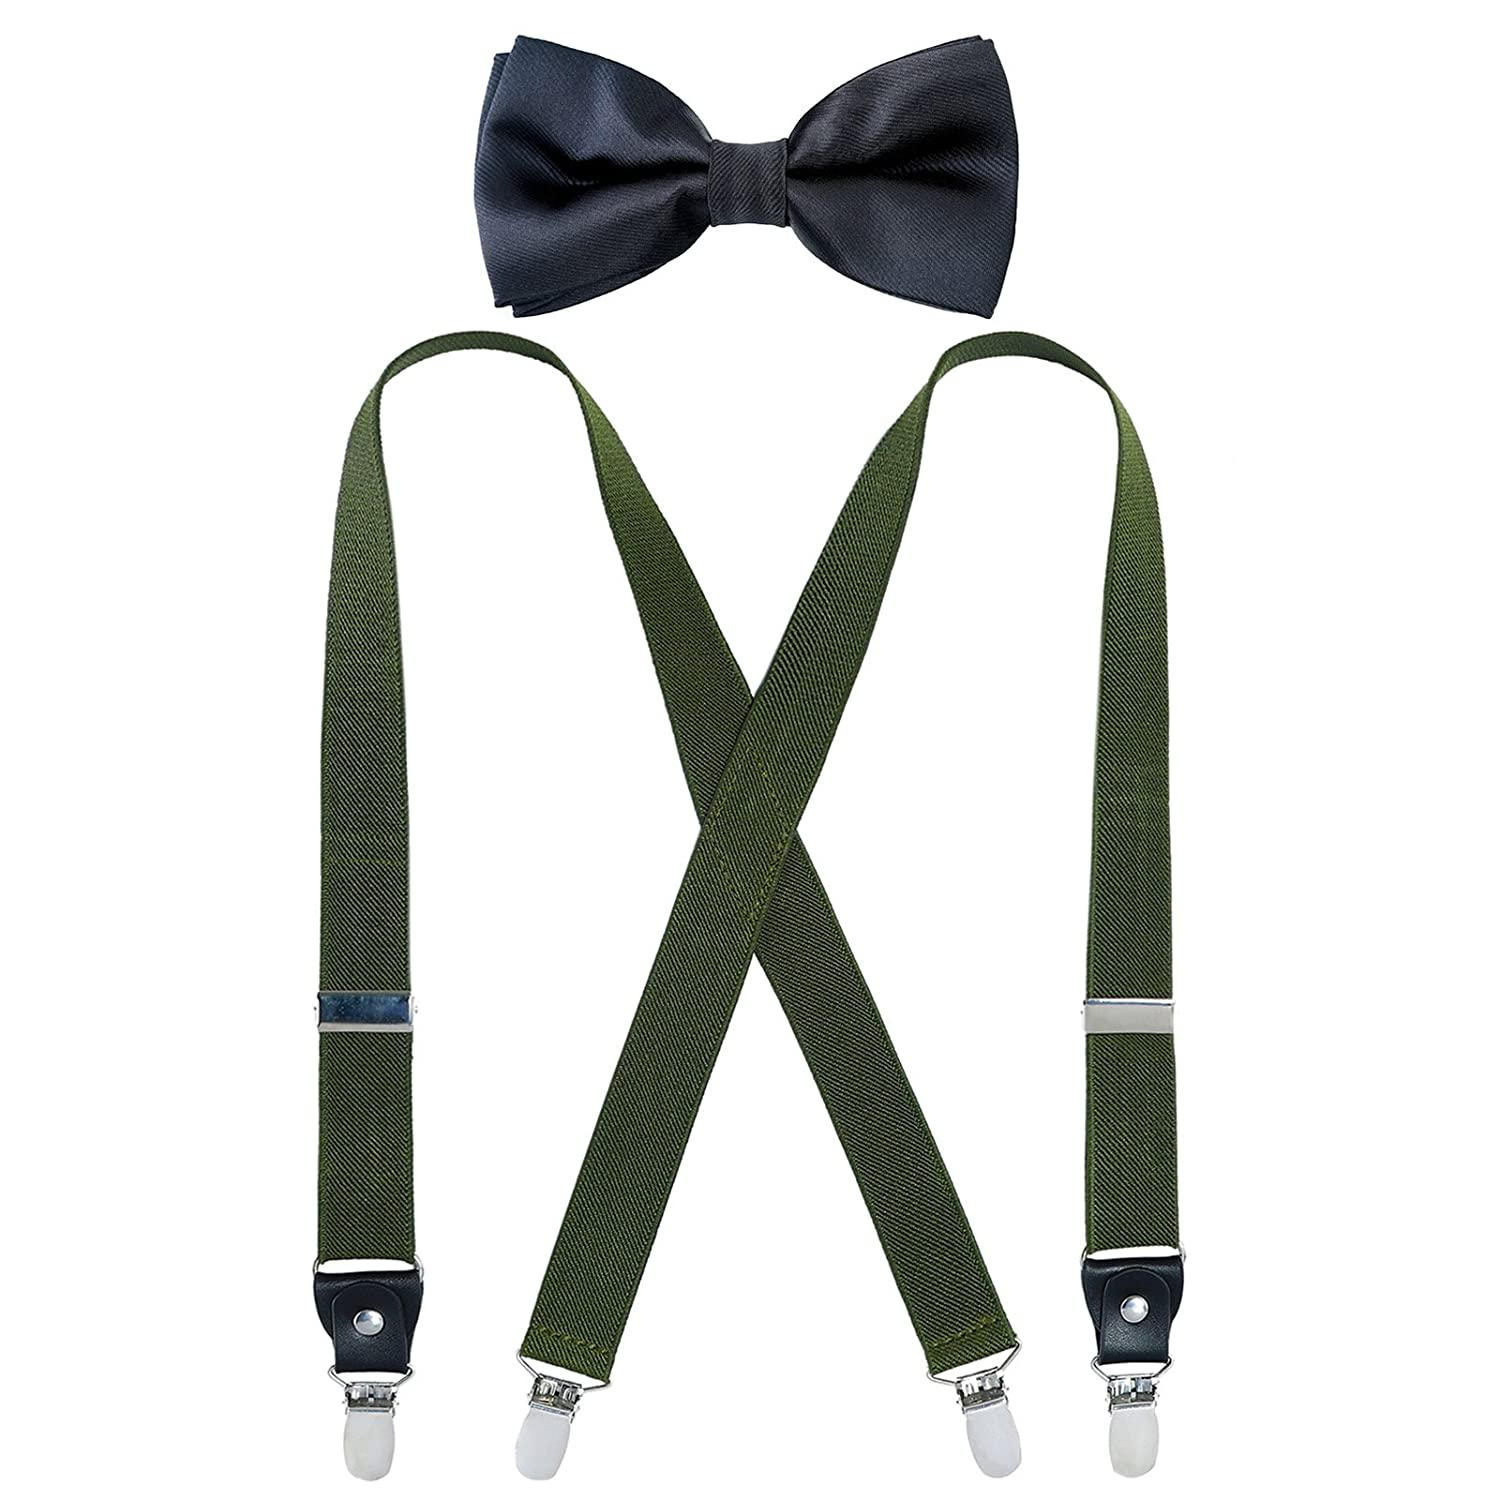 Kids Boy Suspenders Bowtie Set - Adjustable Suspender and Pre tied Bow Tie Set for Men (24Inches (7Months to 3 Years), Navy Blue& Red Stripe) WBU15TY36